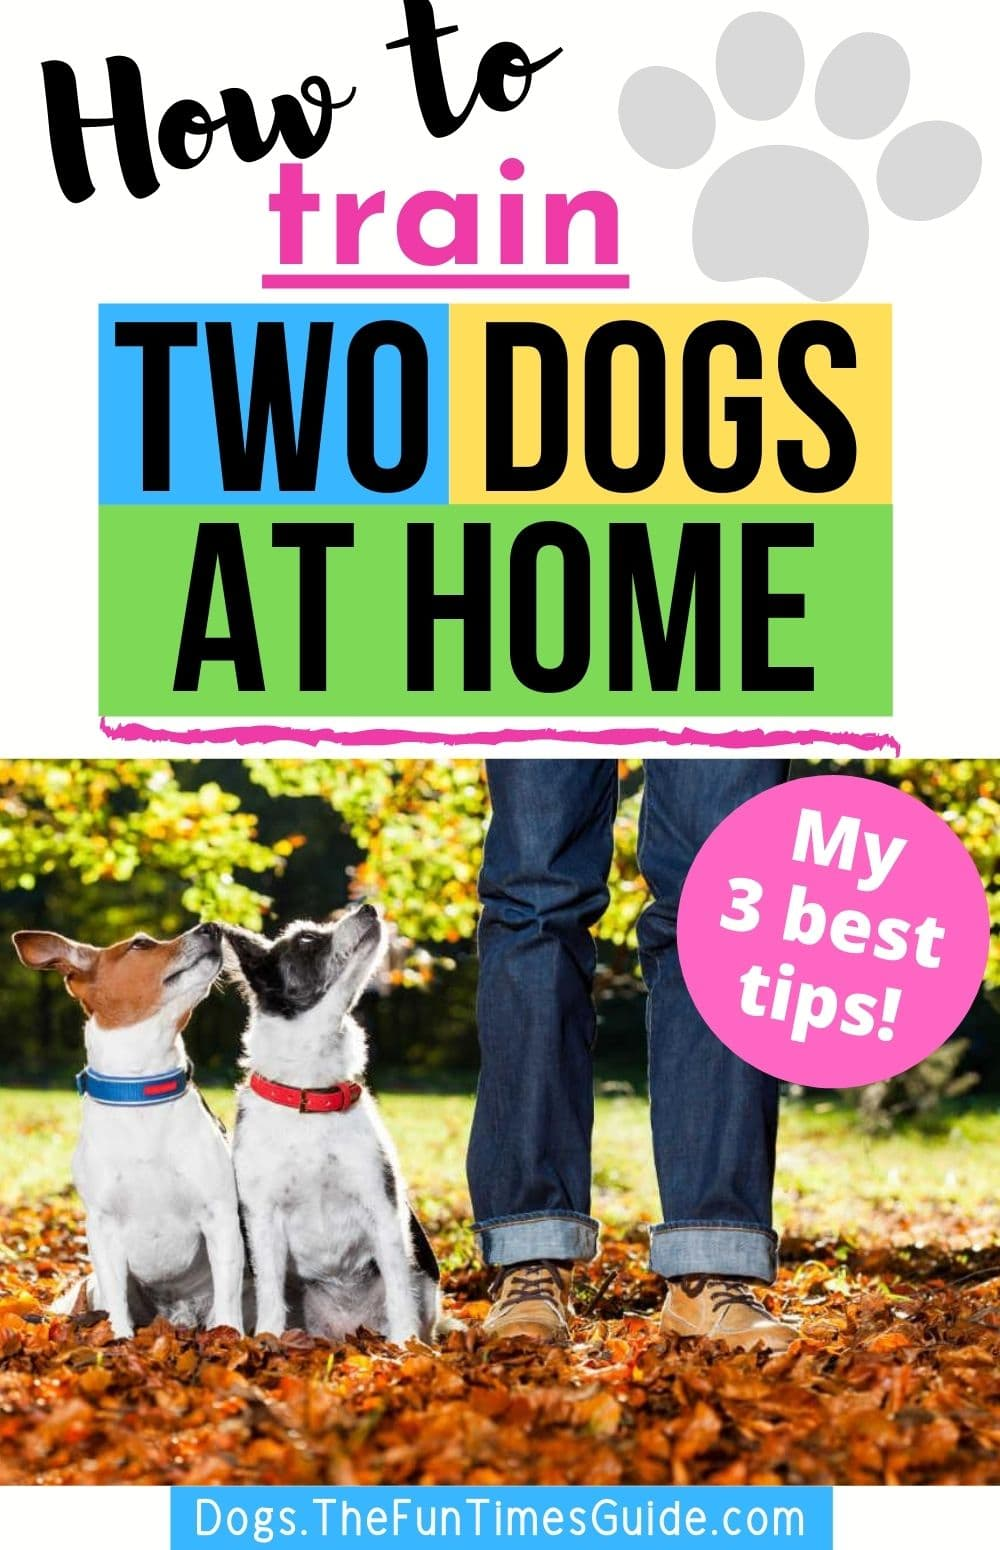 Training Two Dogs At Once Is Not Easy - My 3 Best Tips!